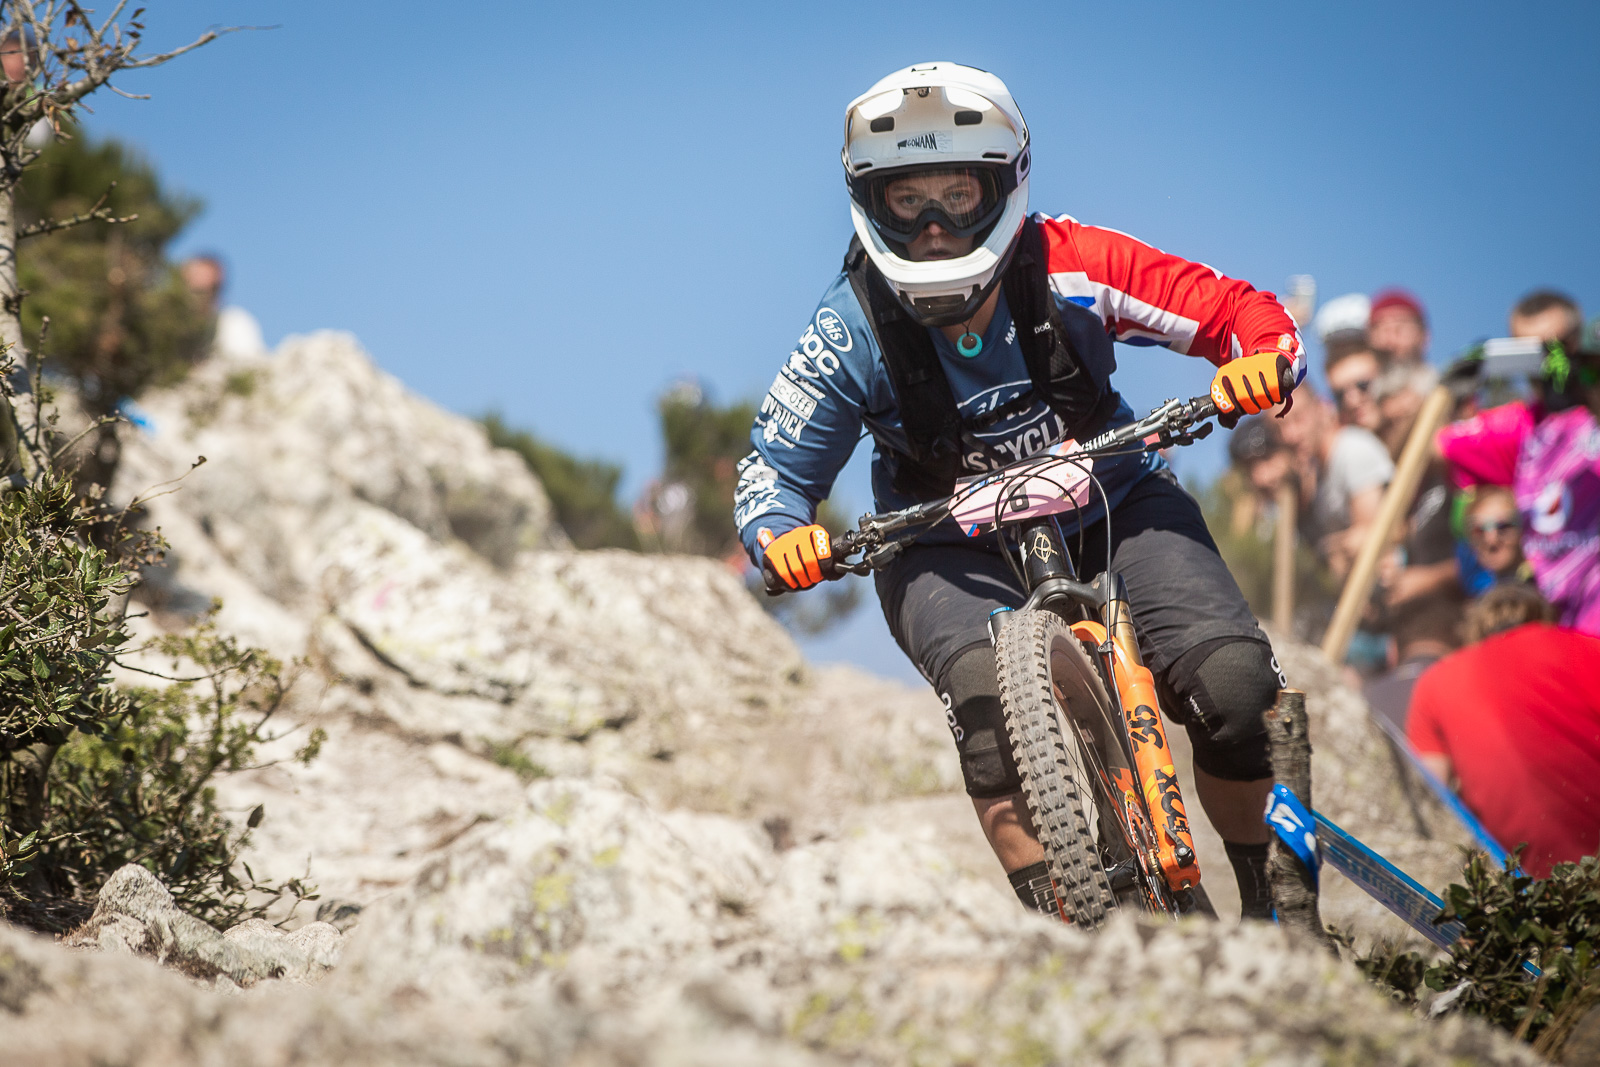 Bex in action 2018 Enduro World Series. Photo credit: Dave Trumpore